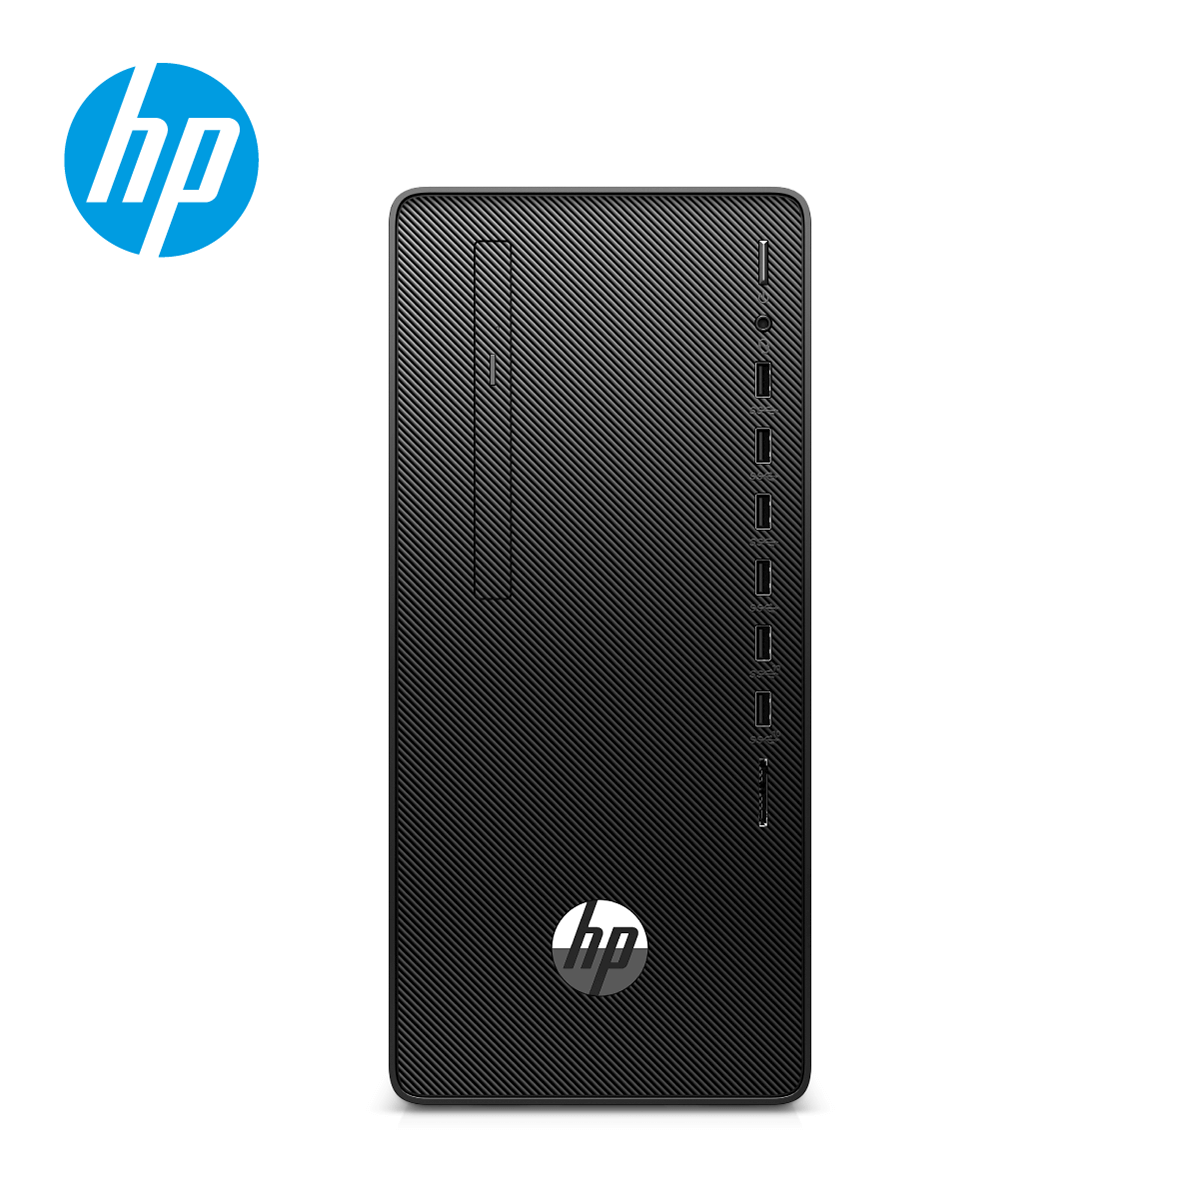 HP 280 Pro G6 Microtower (i7, Black)